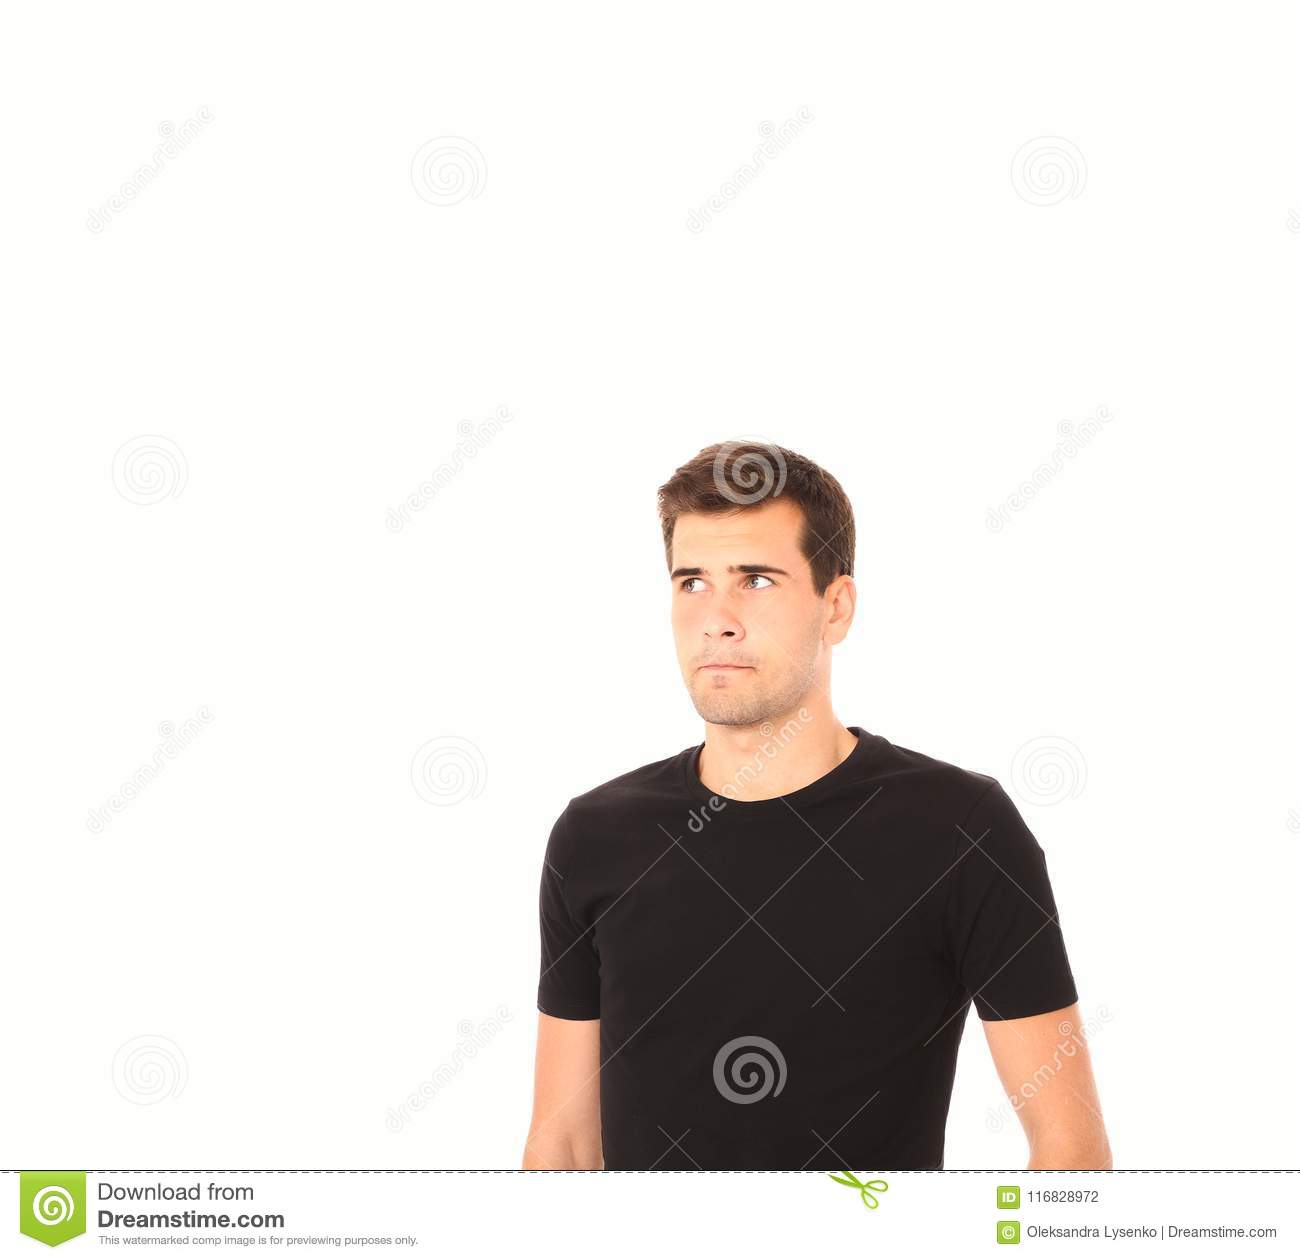 a1559fad3565 Portrait of smart thinking young man in black shirt isolated on white. Copy  space.